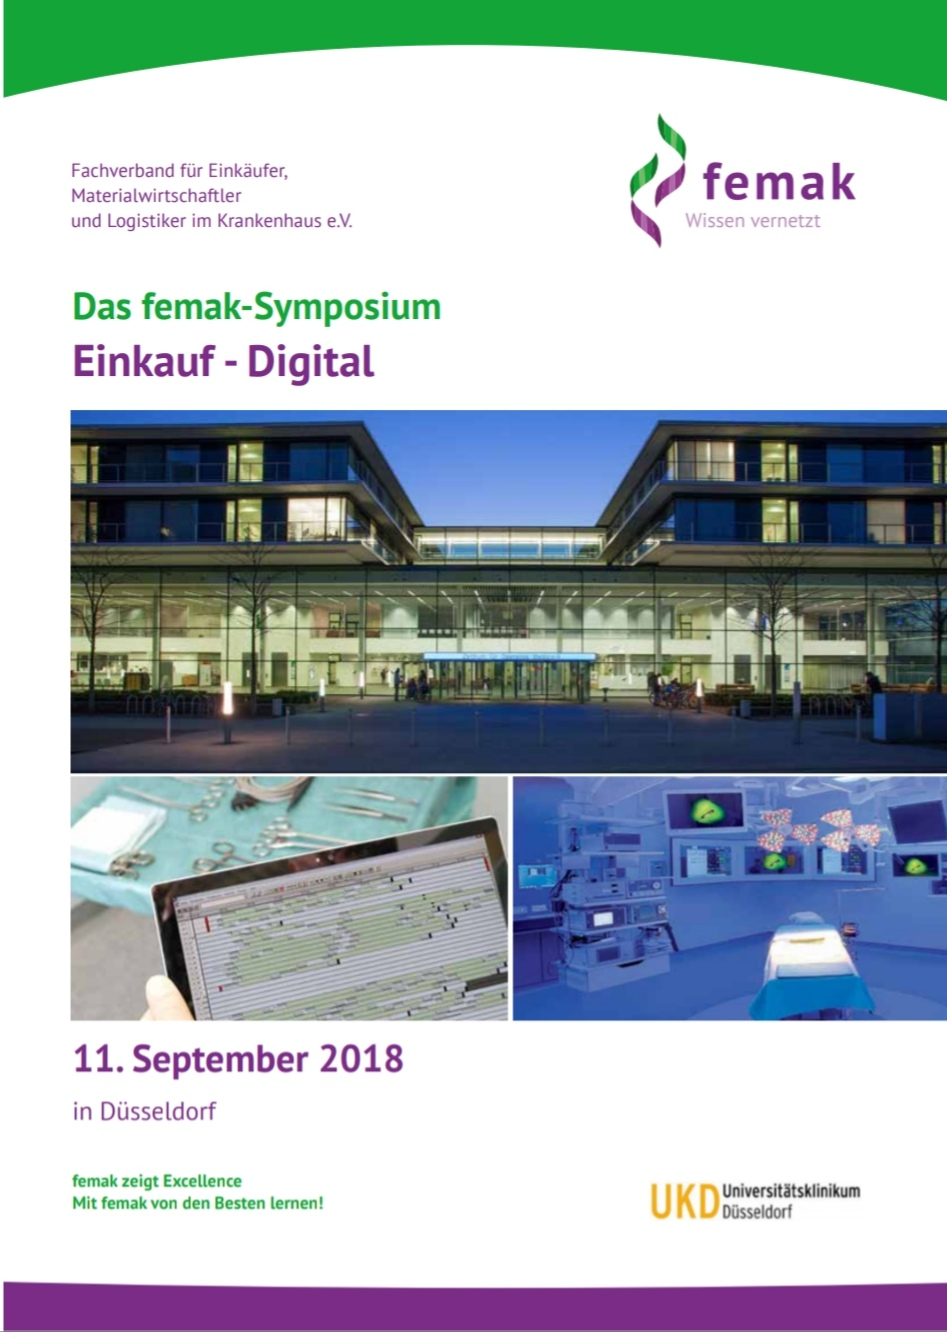 Femak symposium am 11. September 2018 in der Universitätsklinik Düsseldorf